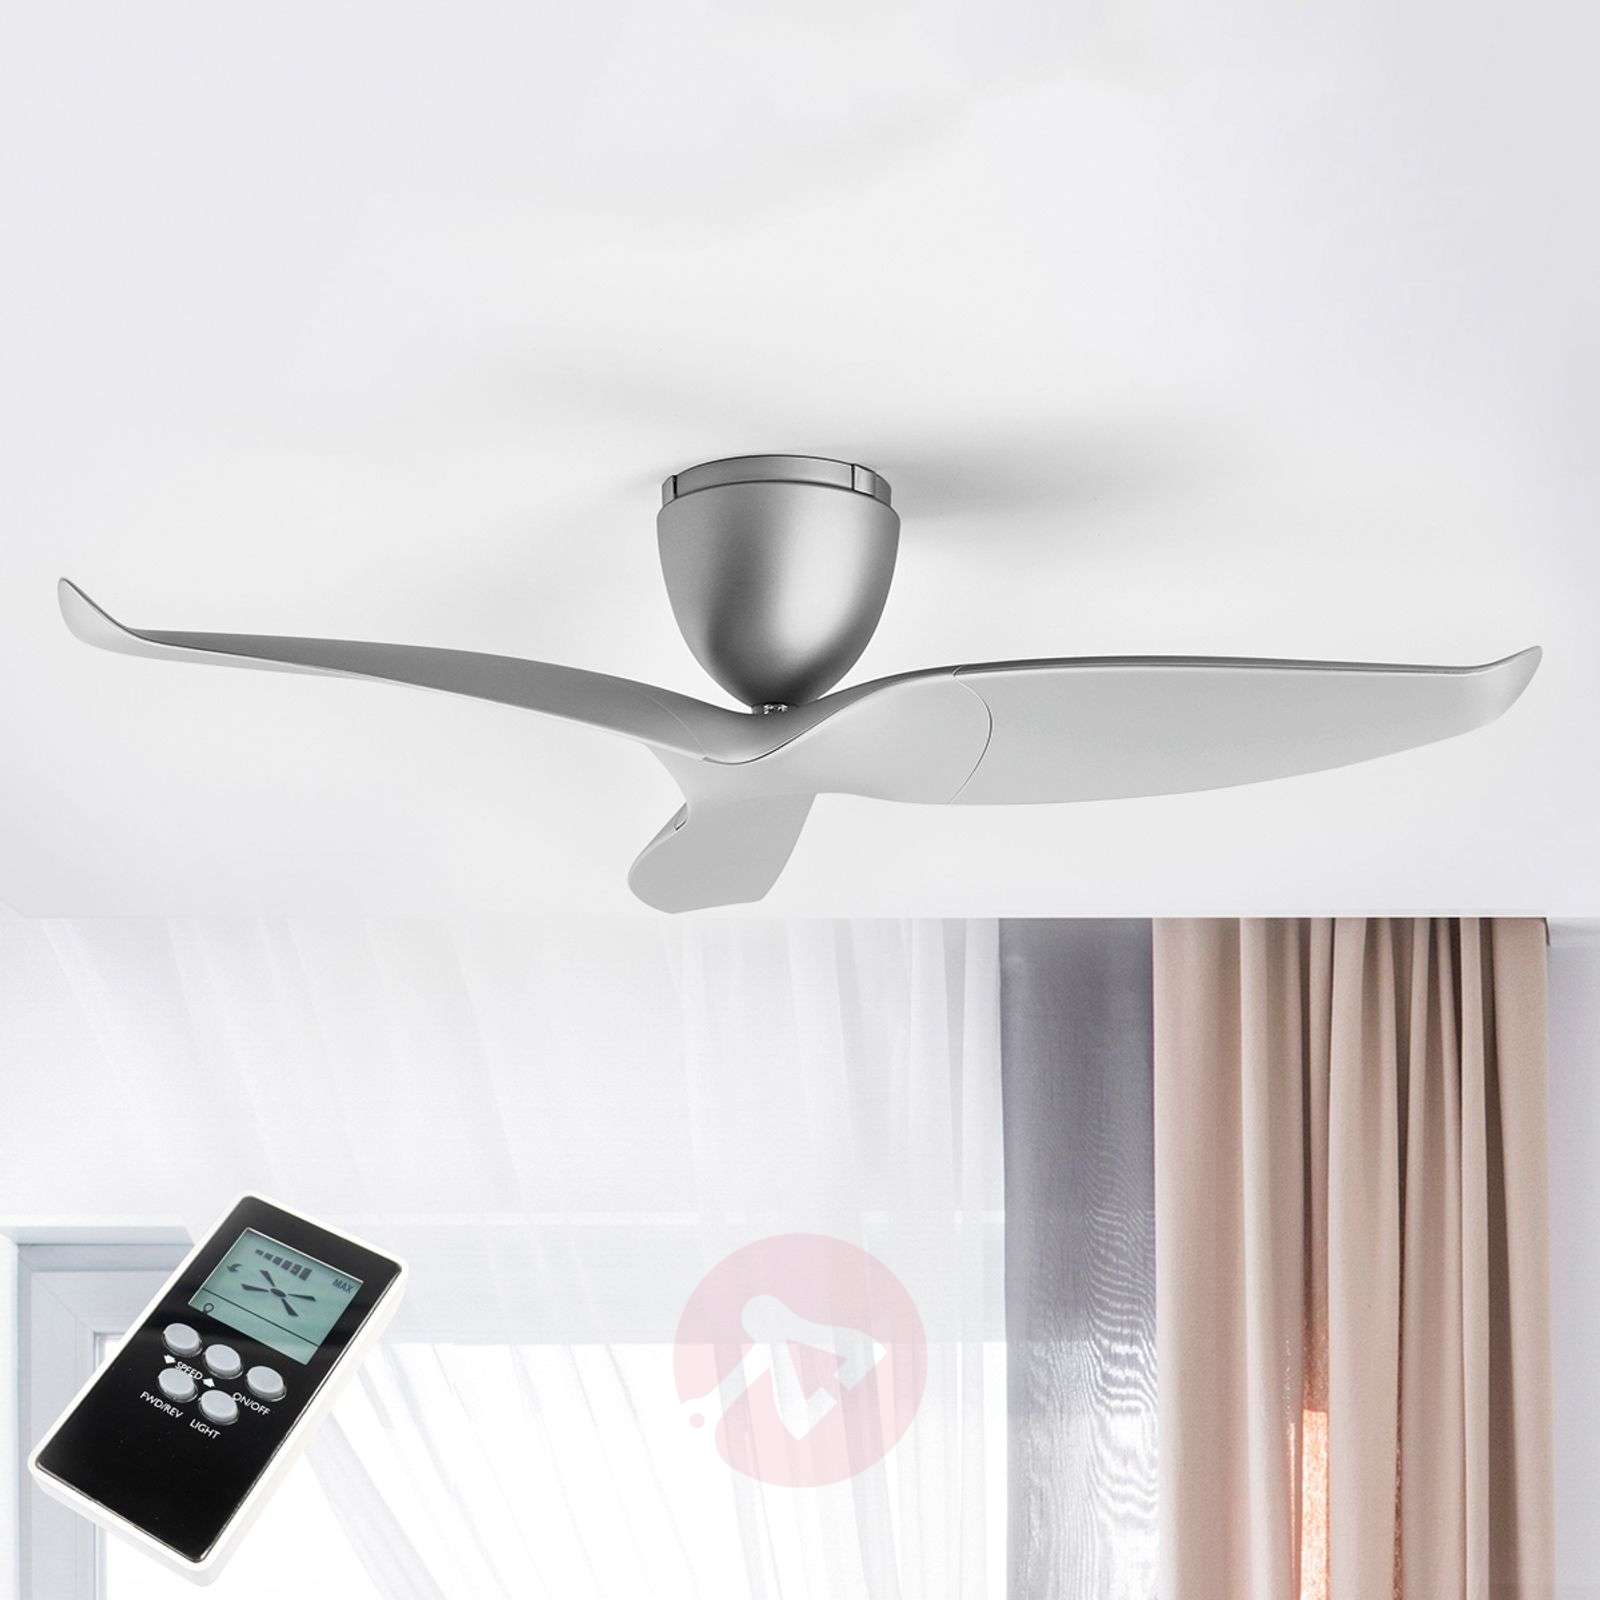 High Quality Ceiling Fan With Remote Control Special: Aeratron Ceiling Fan, Silver, 109.2 Cm